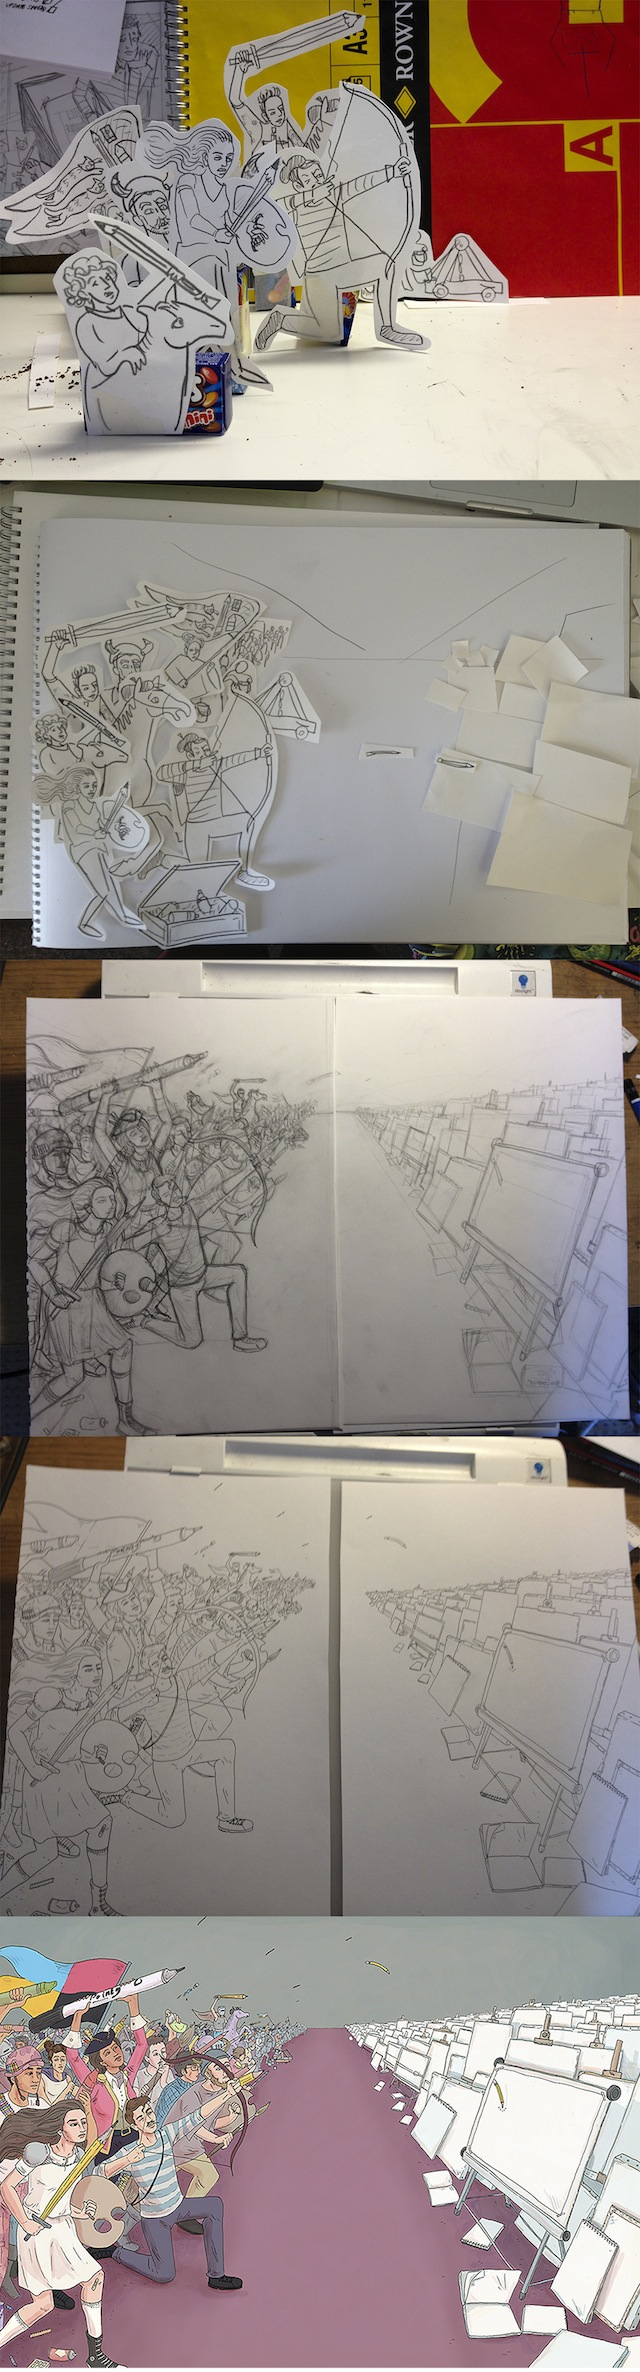 Rory's drawing process in action